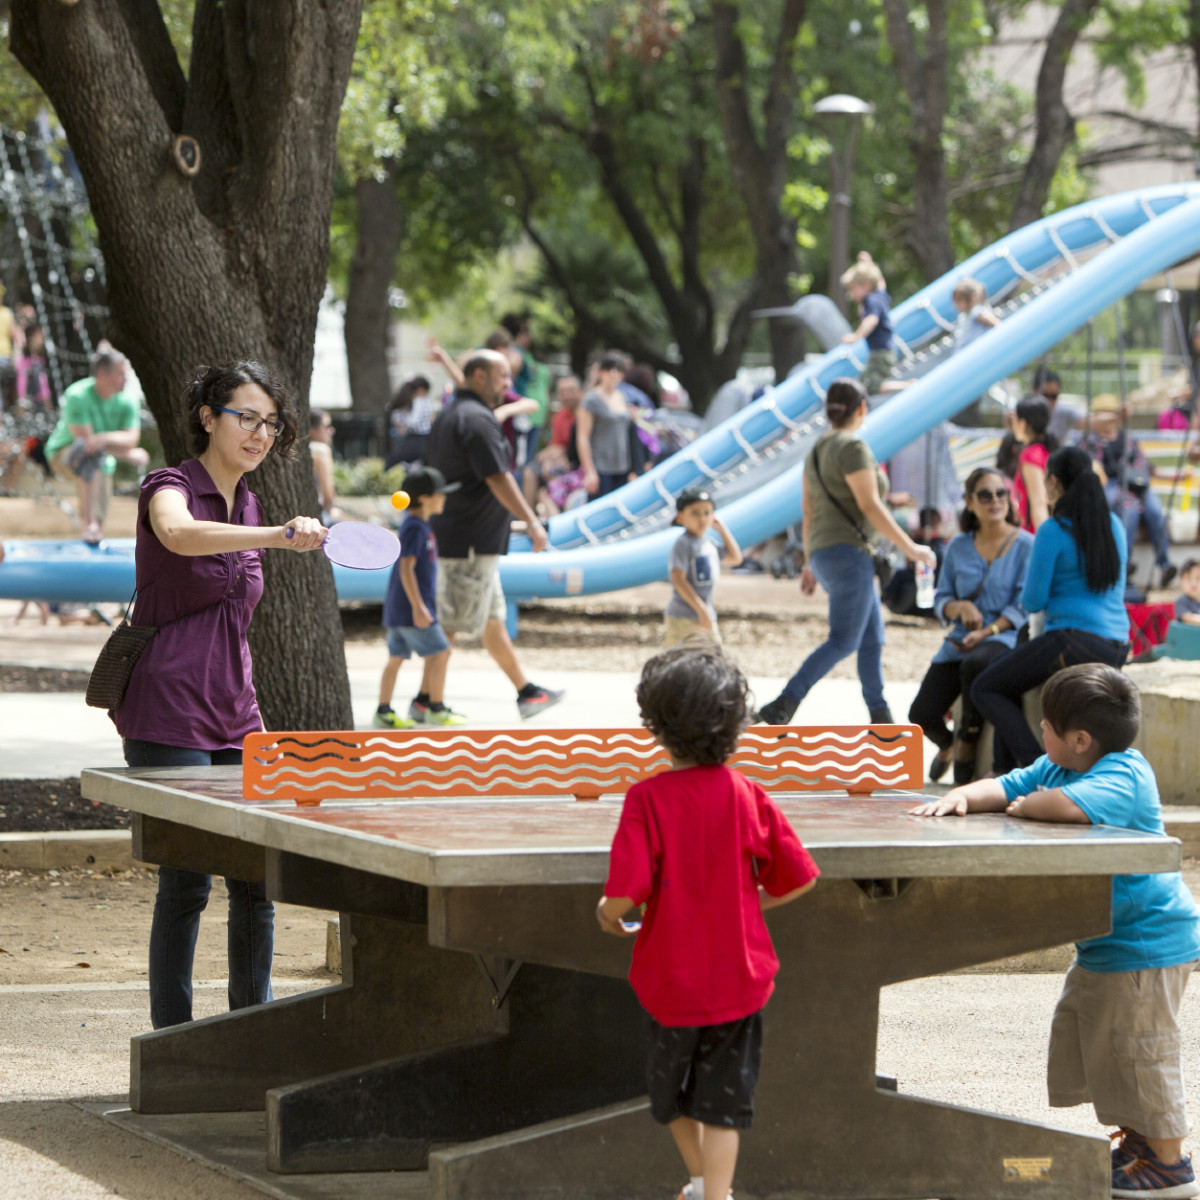 Hemisfair mom kids playing